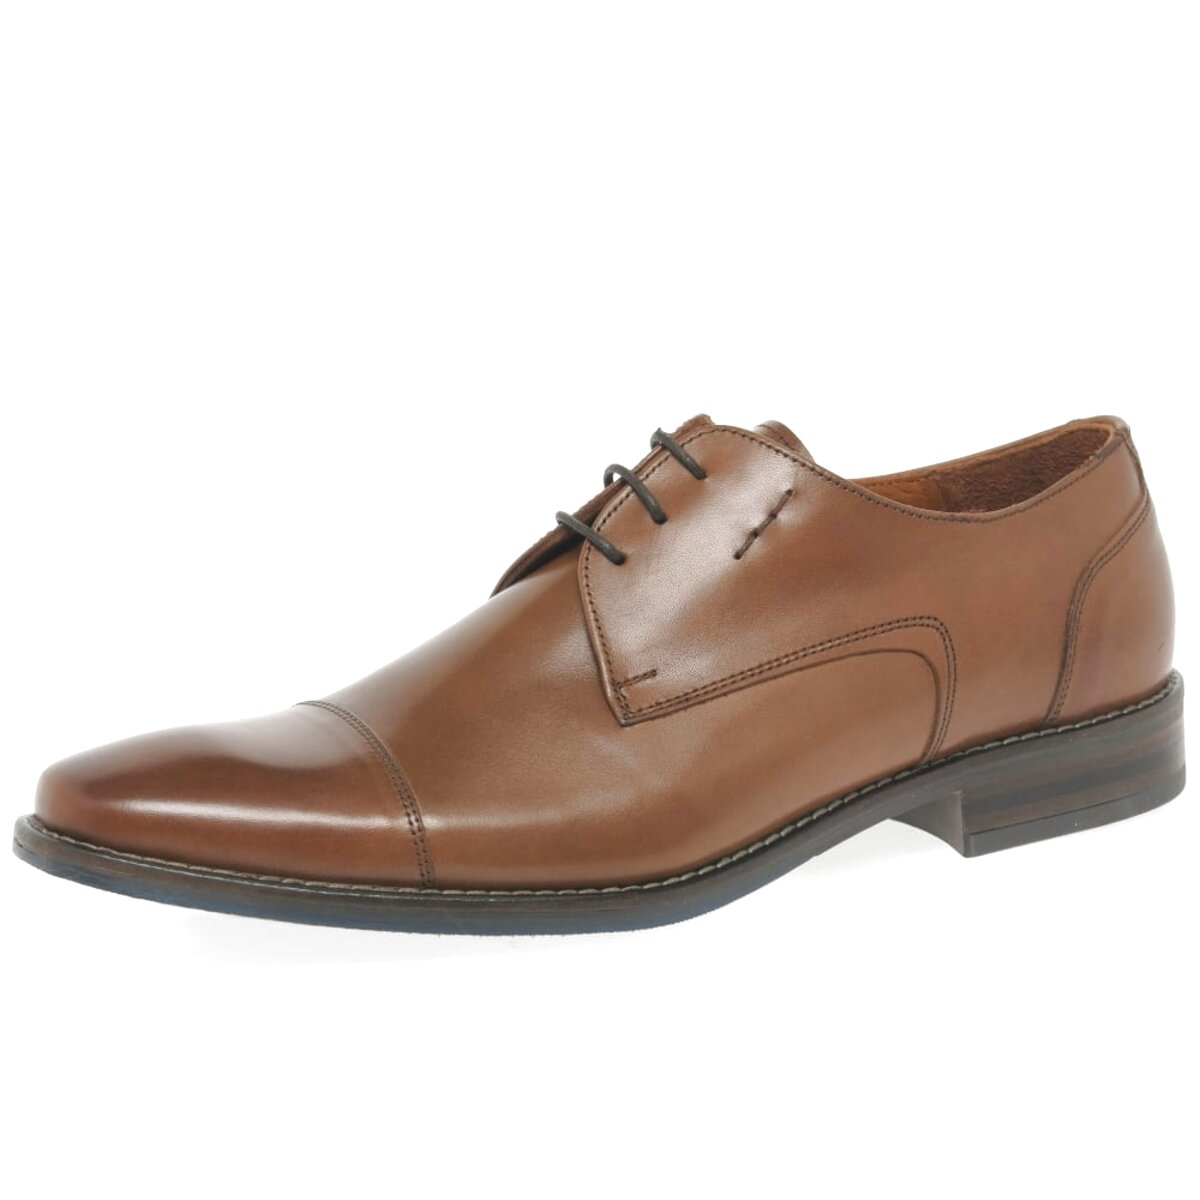 gabor mens shoes for sale